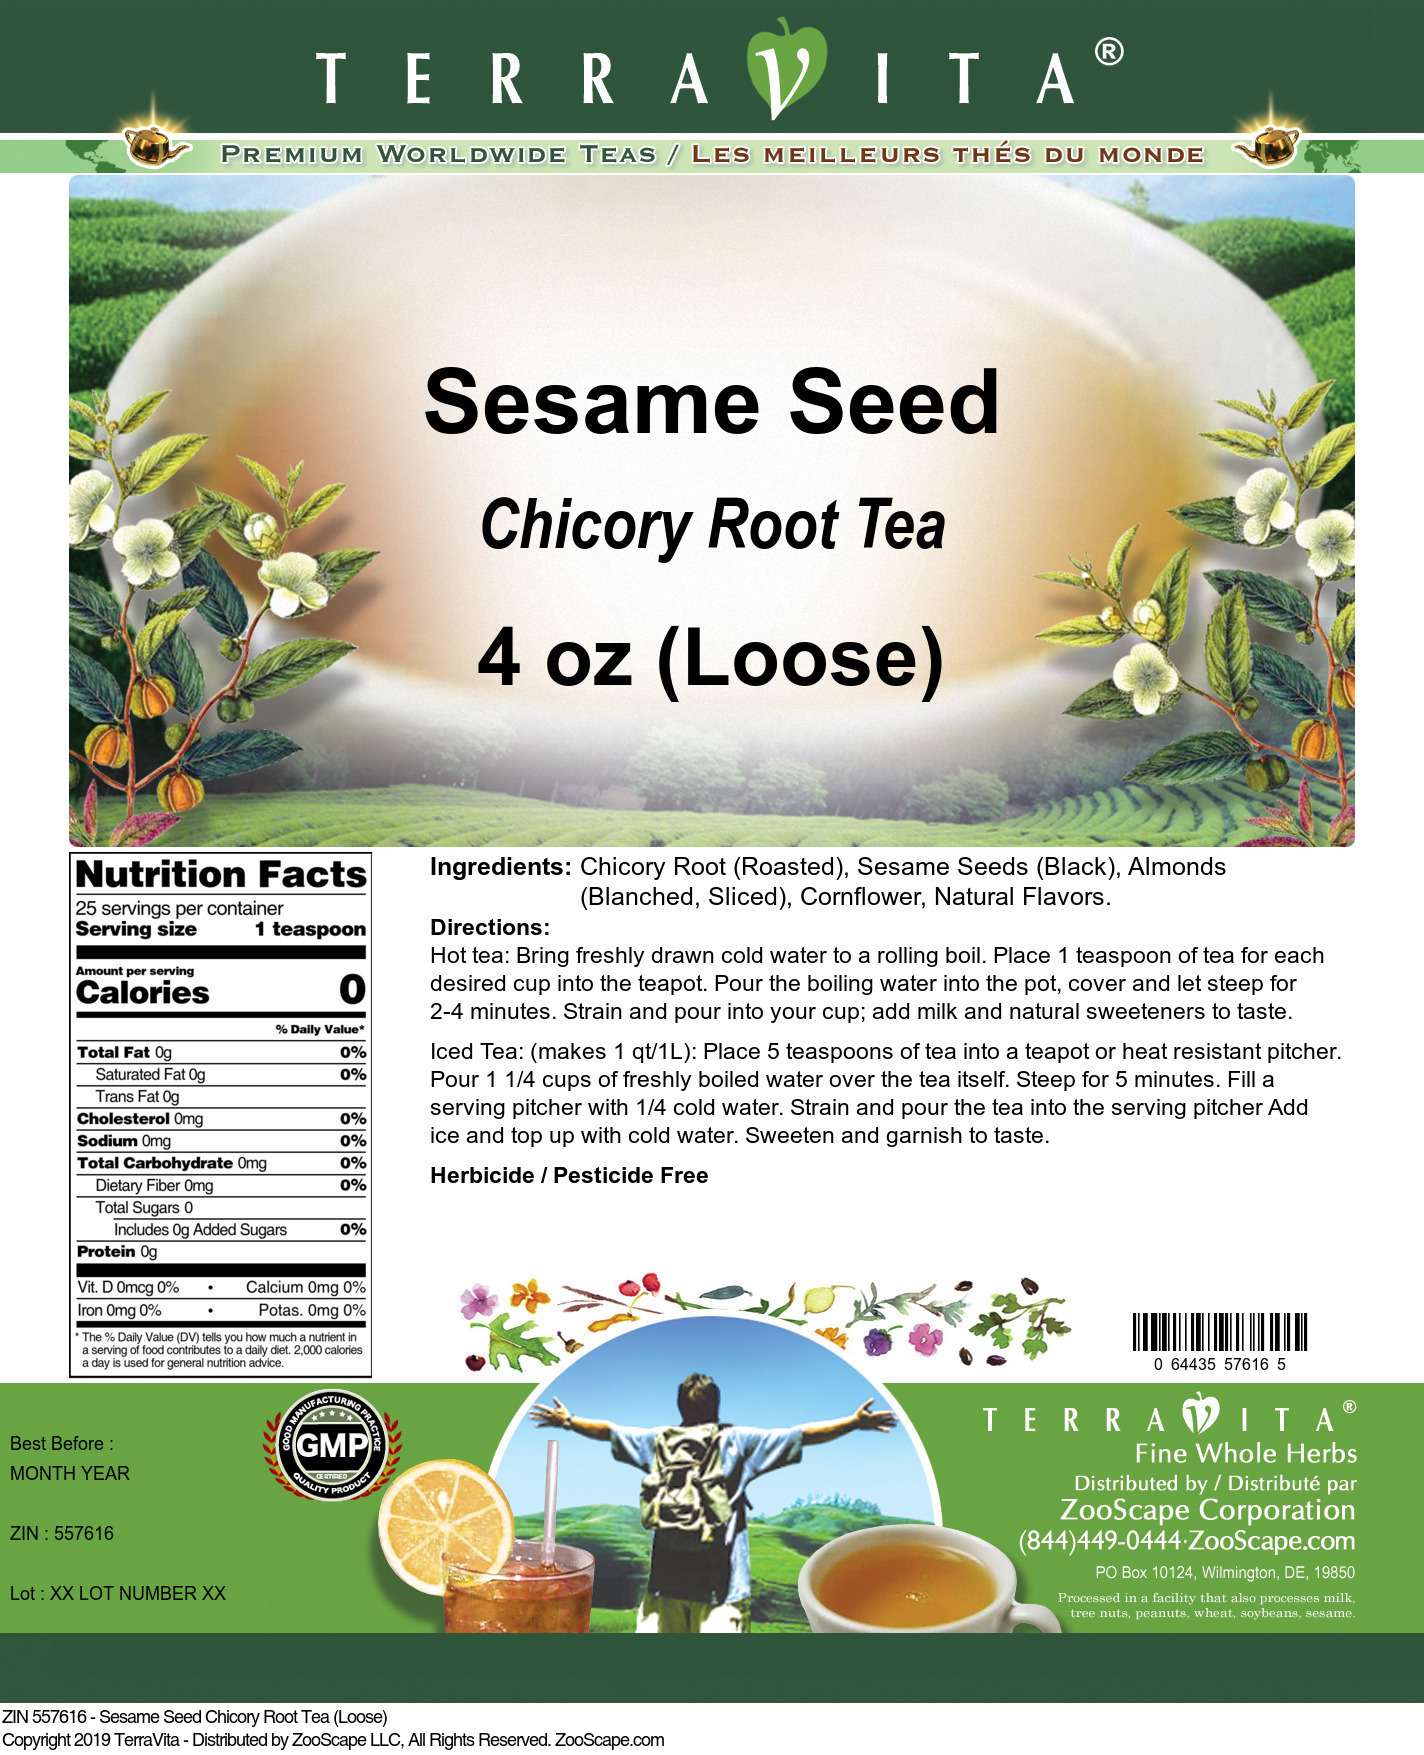 Sesame Seed Chicory Root